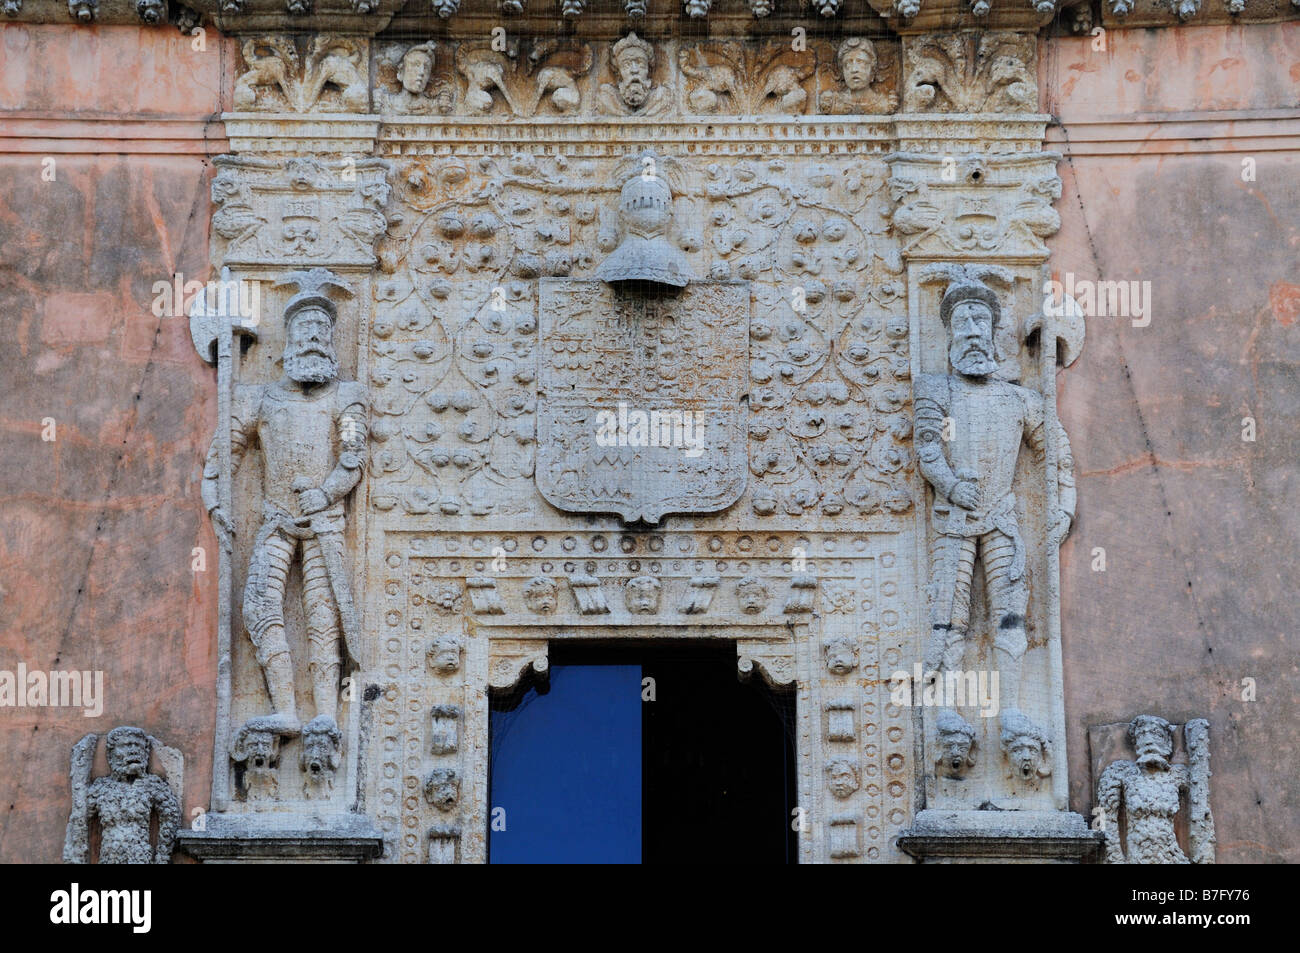 Statues of Spanish conquistadors on entrance to 16th century palace Casa de Montejo, Merida, Mexico Stock Photo